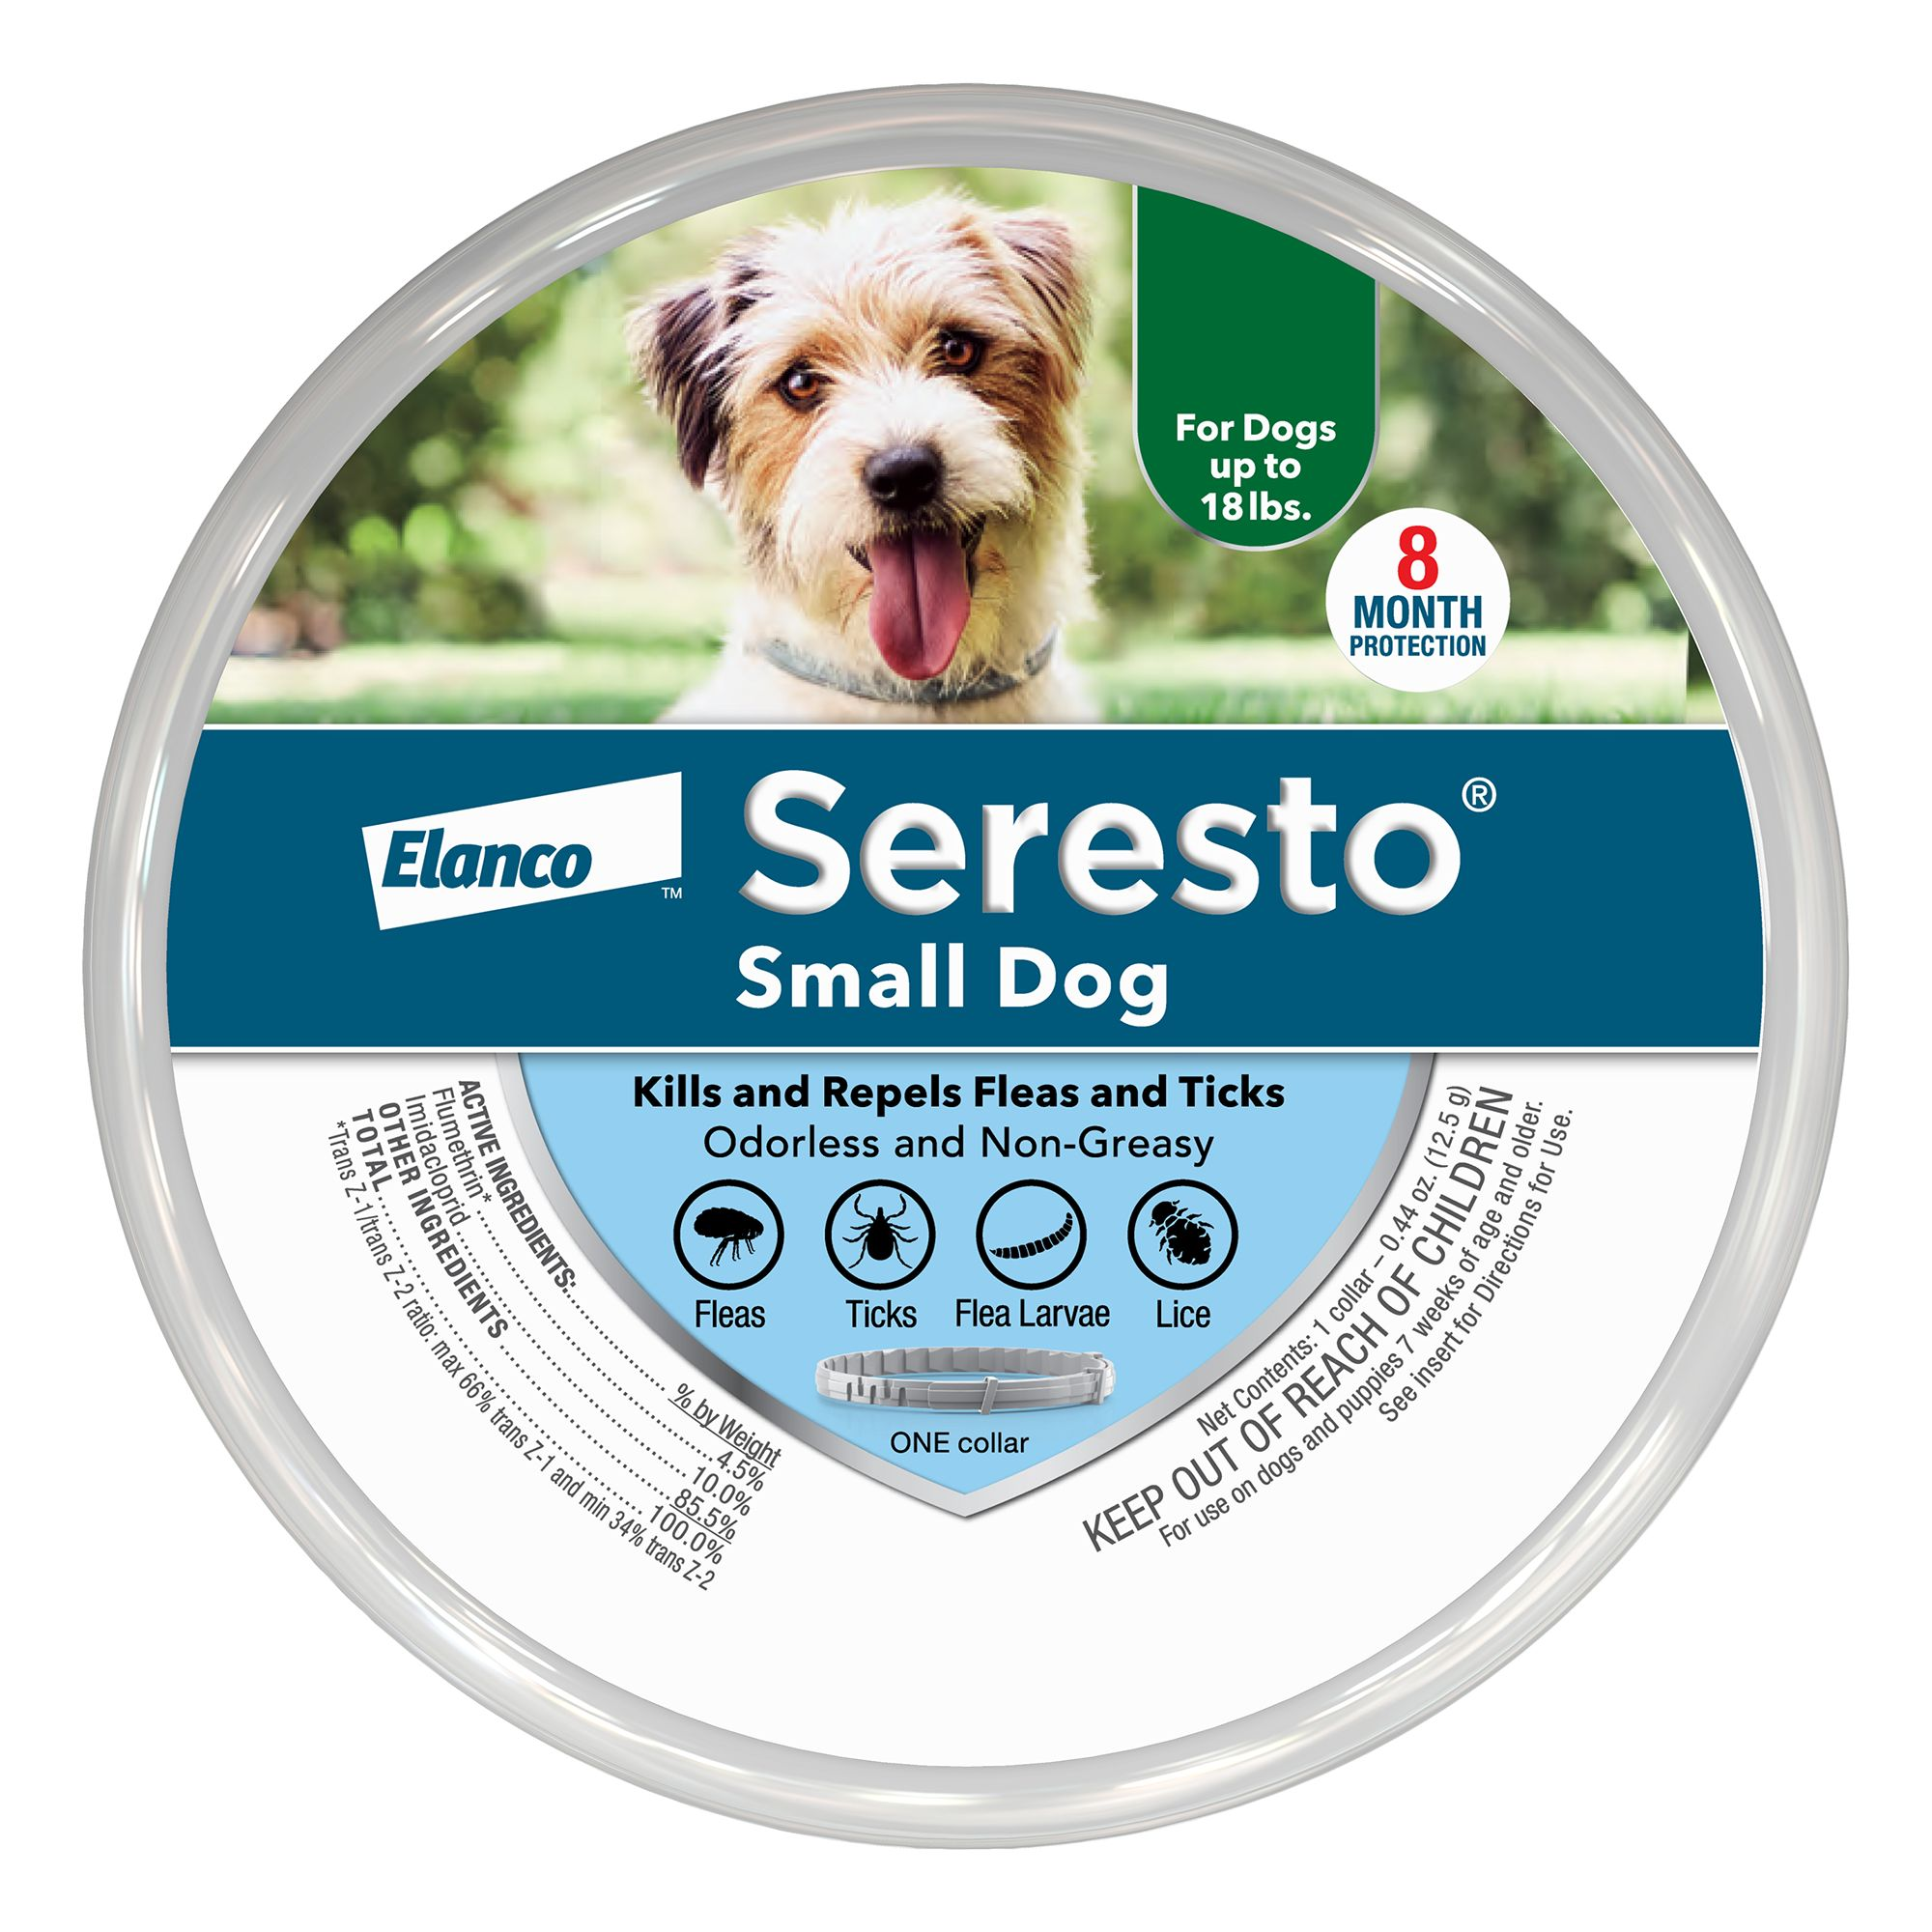 Seresto Flea and Tick Dog Collar size: Small